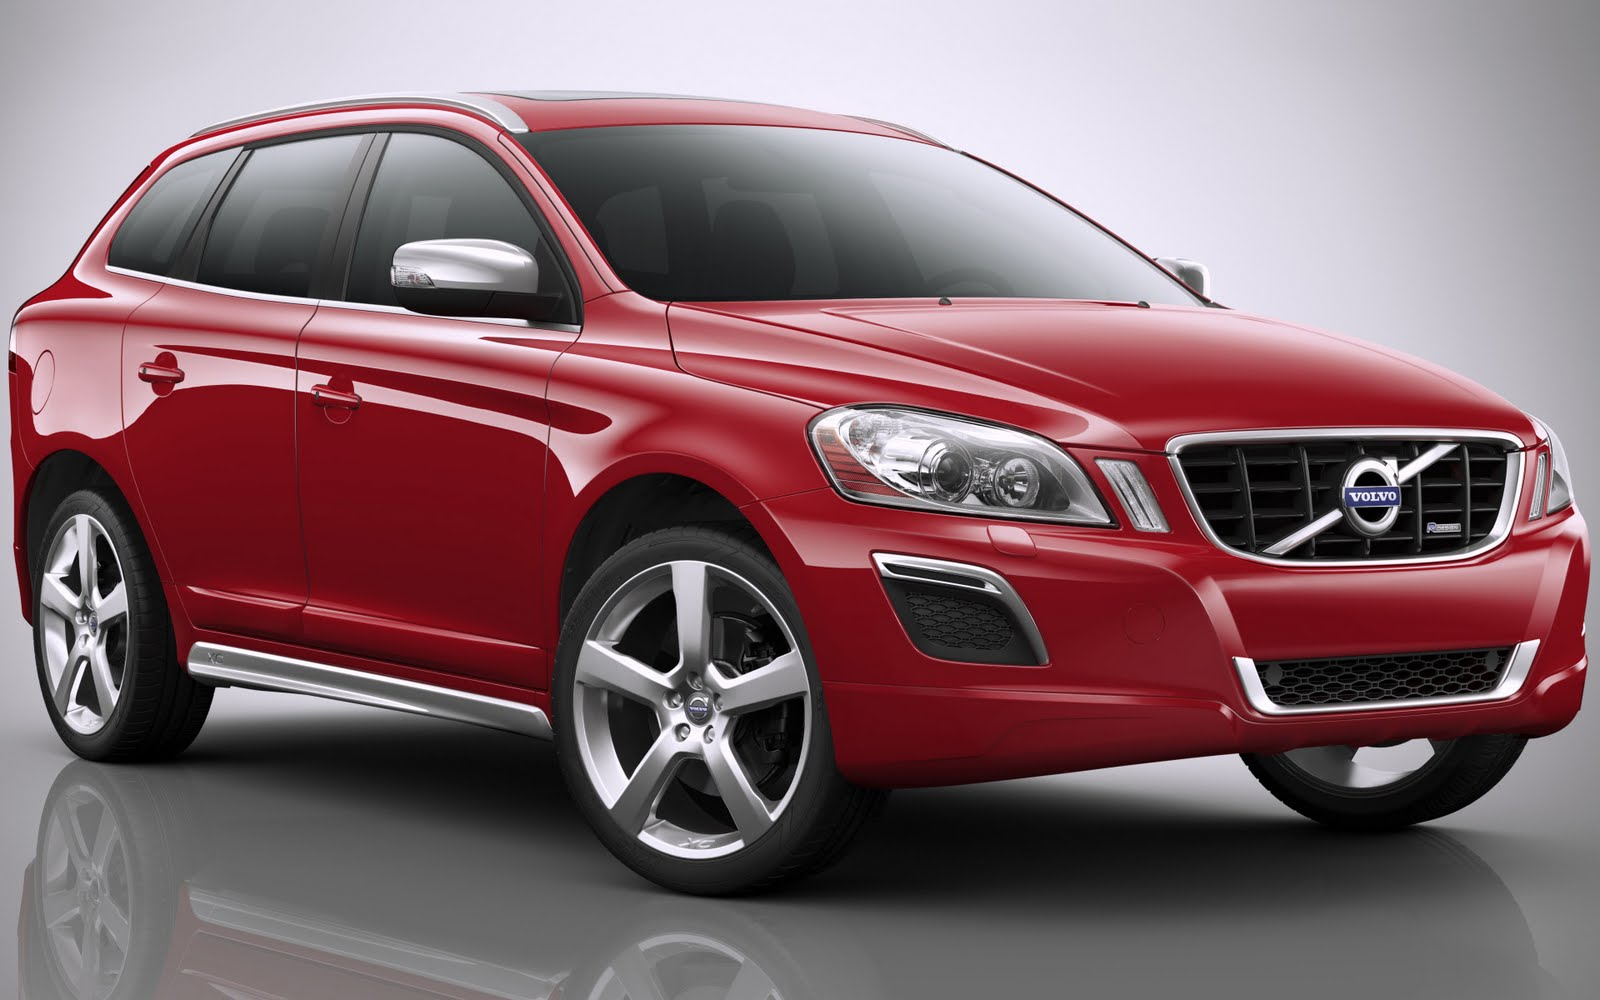 amazing automobile 2011 volvo xc60 in india specifications and prices. Black Bedroom Furniture Sets. Home Design Ideas